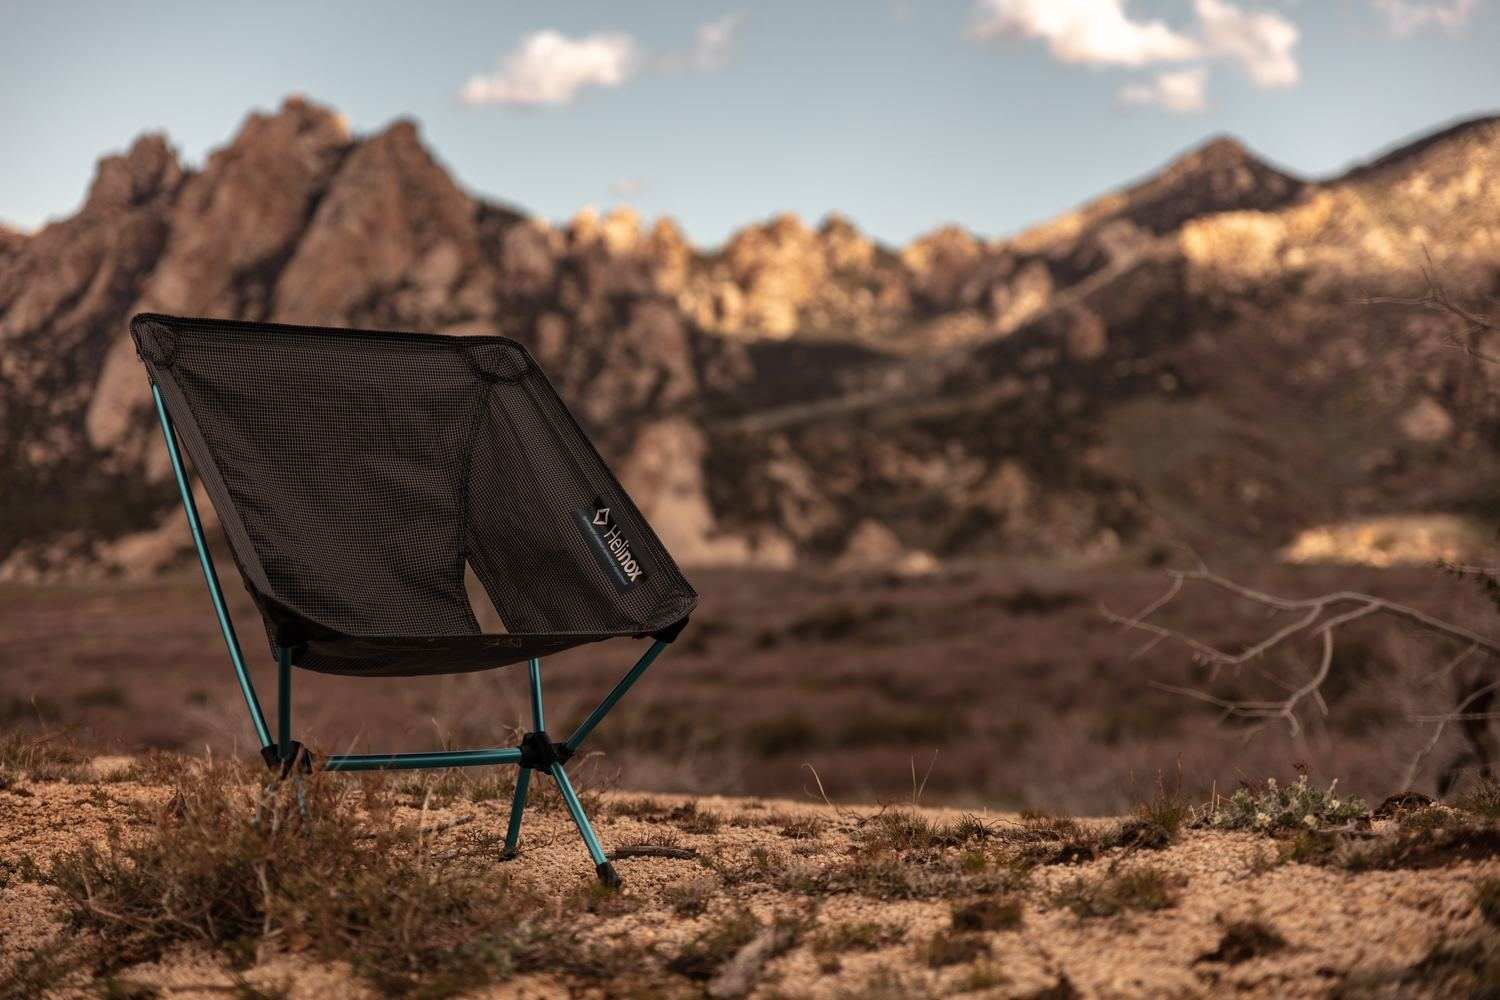 The   Helinox Zero Chair    is our lightweight chair option.   Photo by Patrick Hendry on Unsplash.